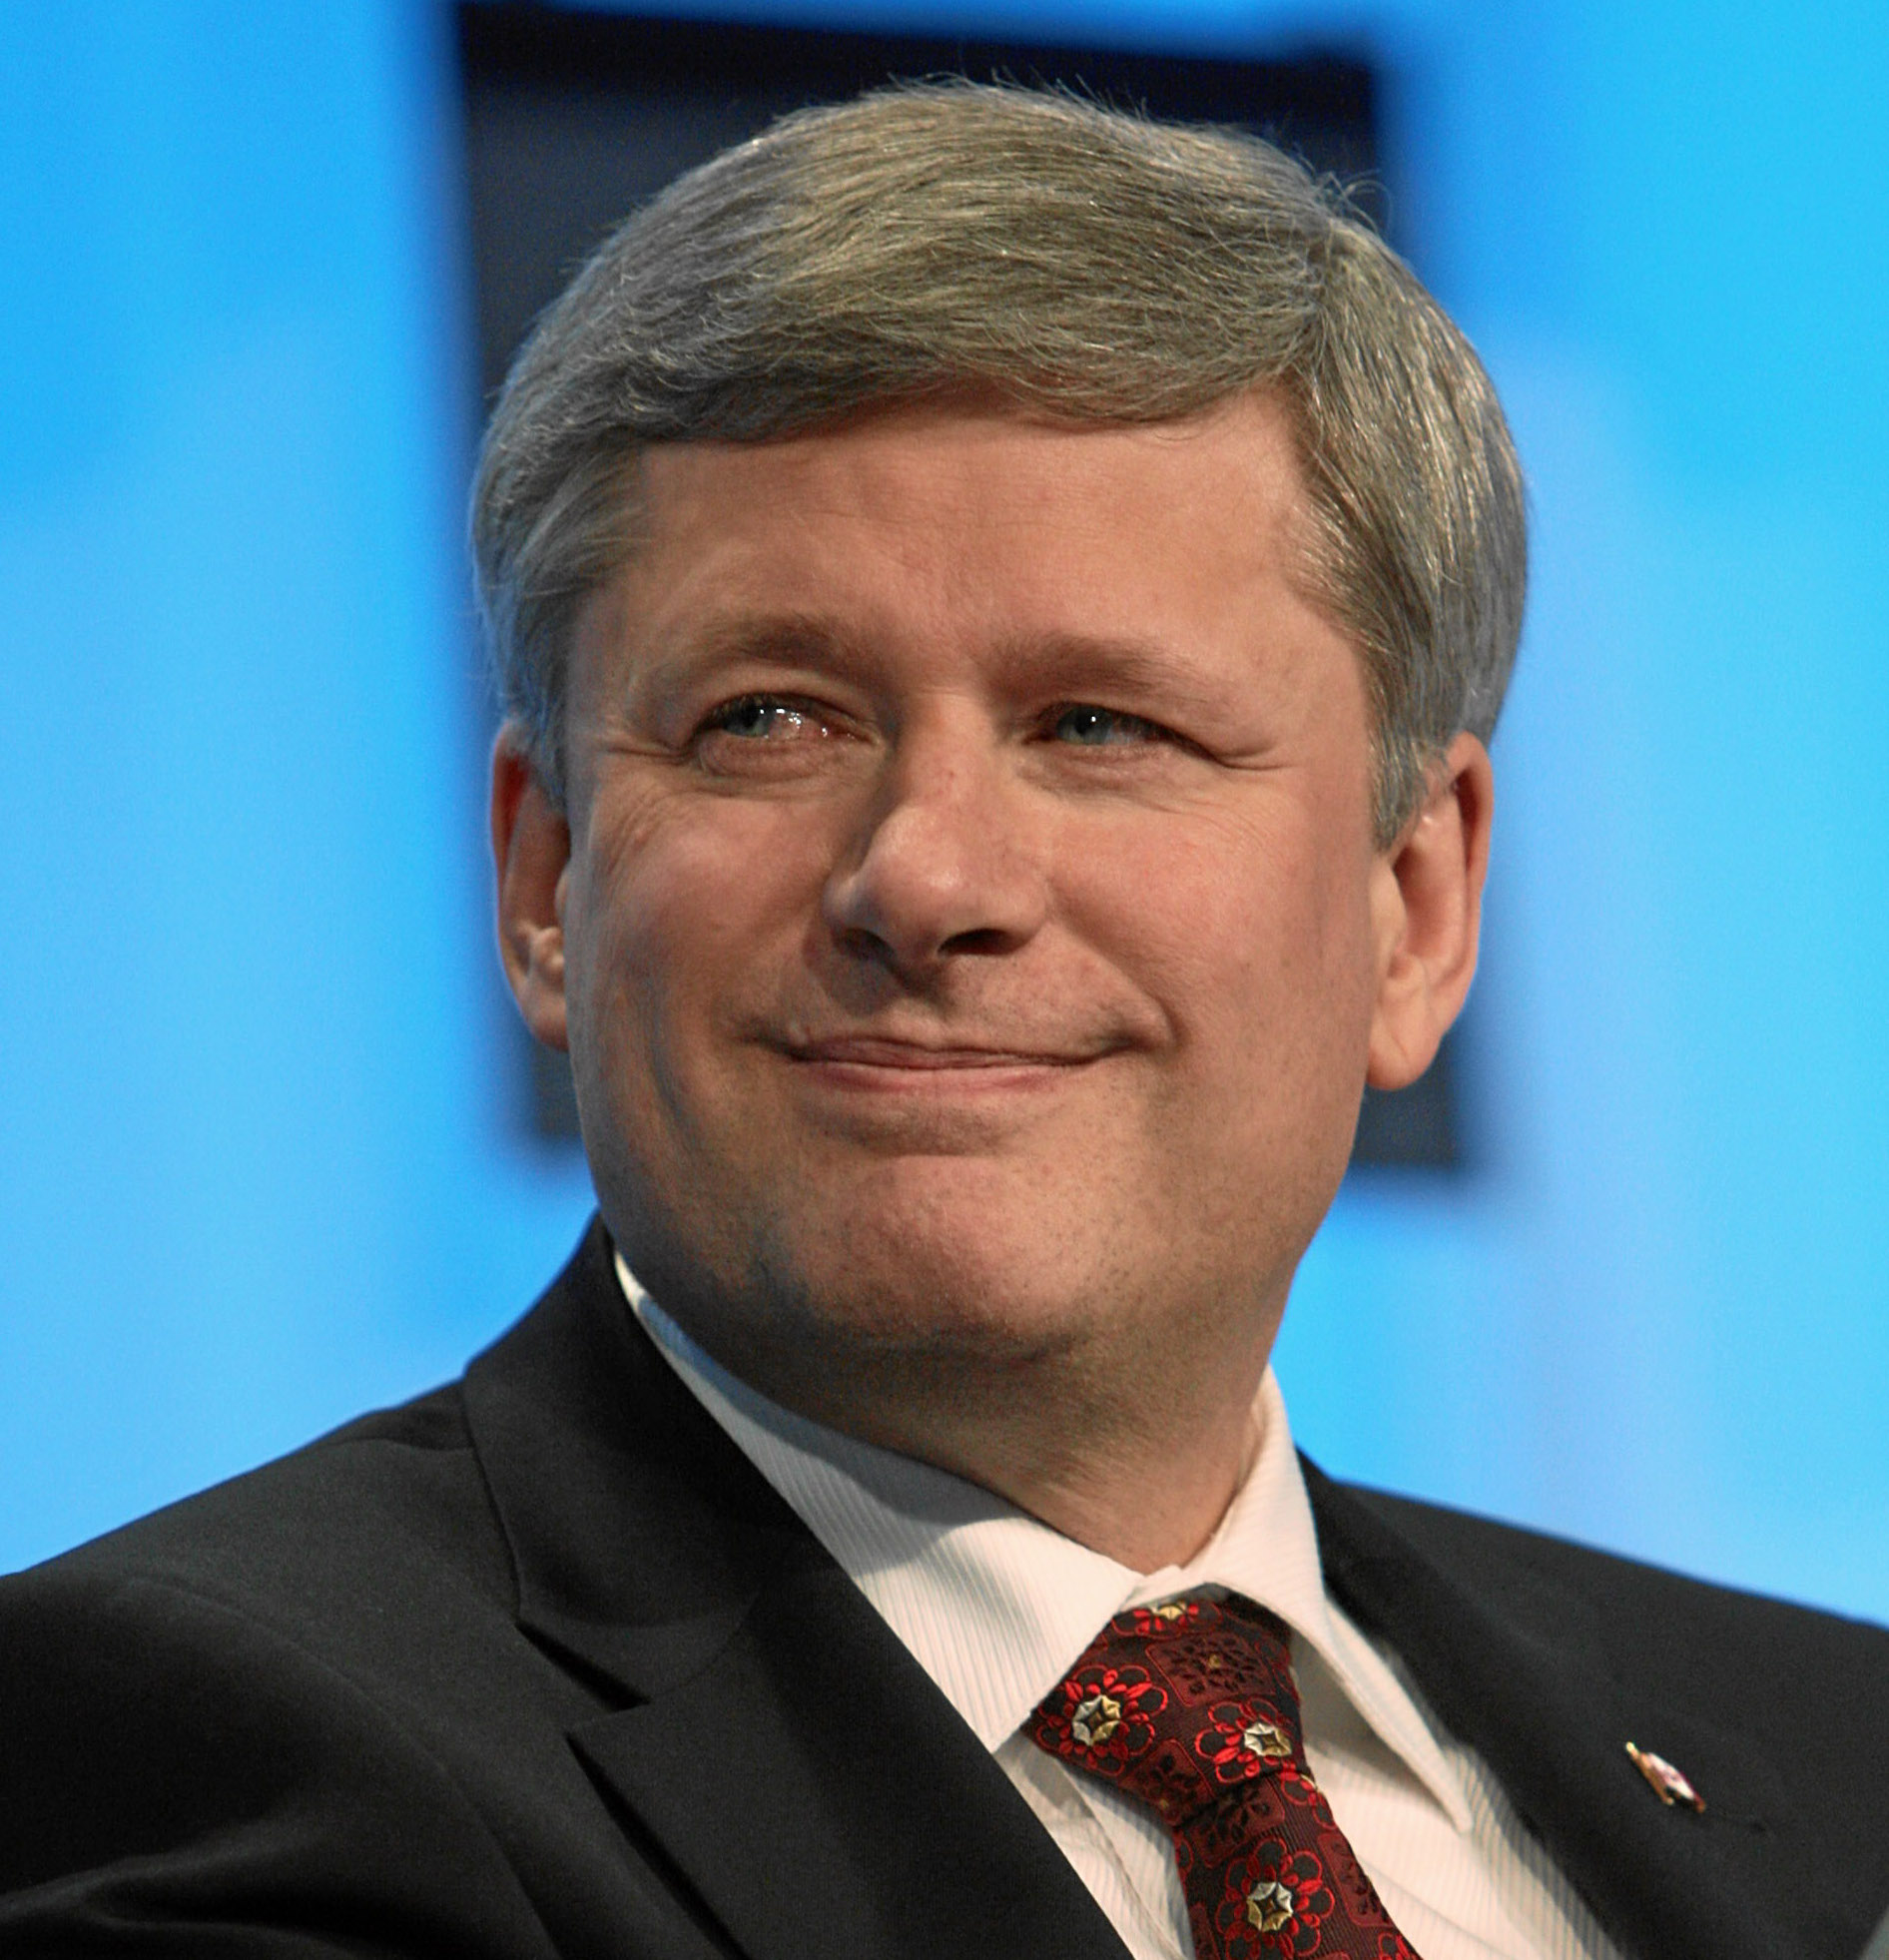 stephen harper essay Next city, winter 1996/97 our benign dictatorship canada's system of one-party-plus rule has stunted democracy two prominent conservatives present the case for more representative government by stephen harper and tom flanagan discussion canadians will be going to the polls this year, with the liberals seemingly headed for a second.